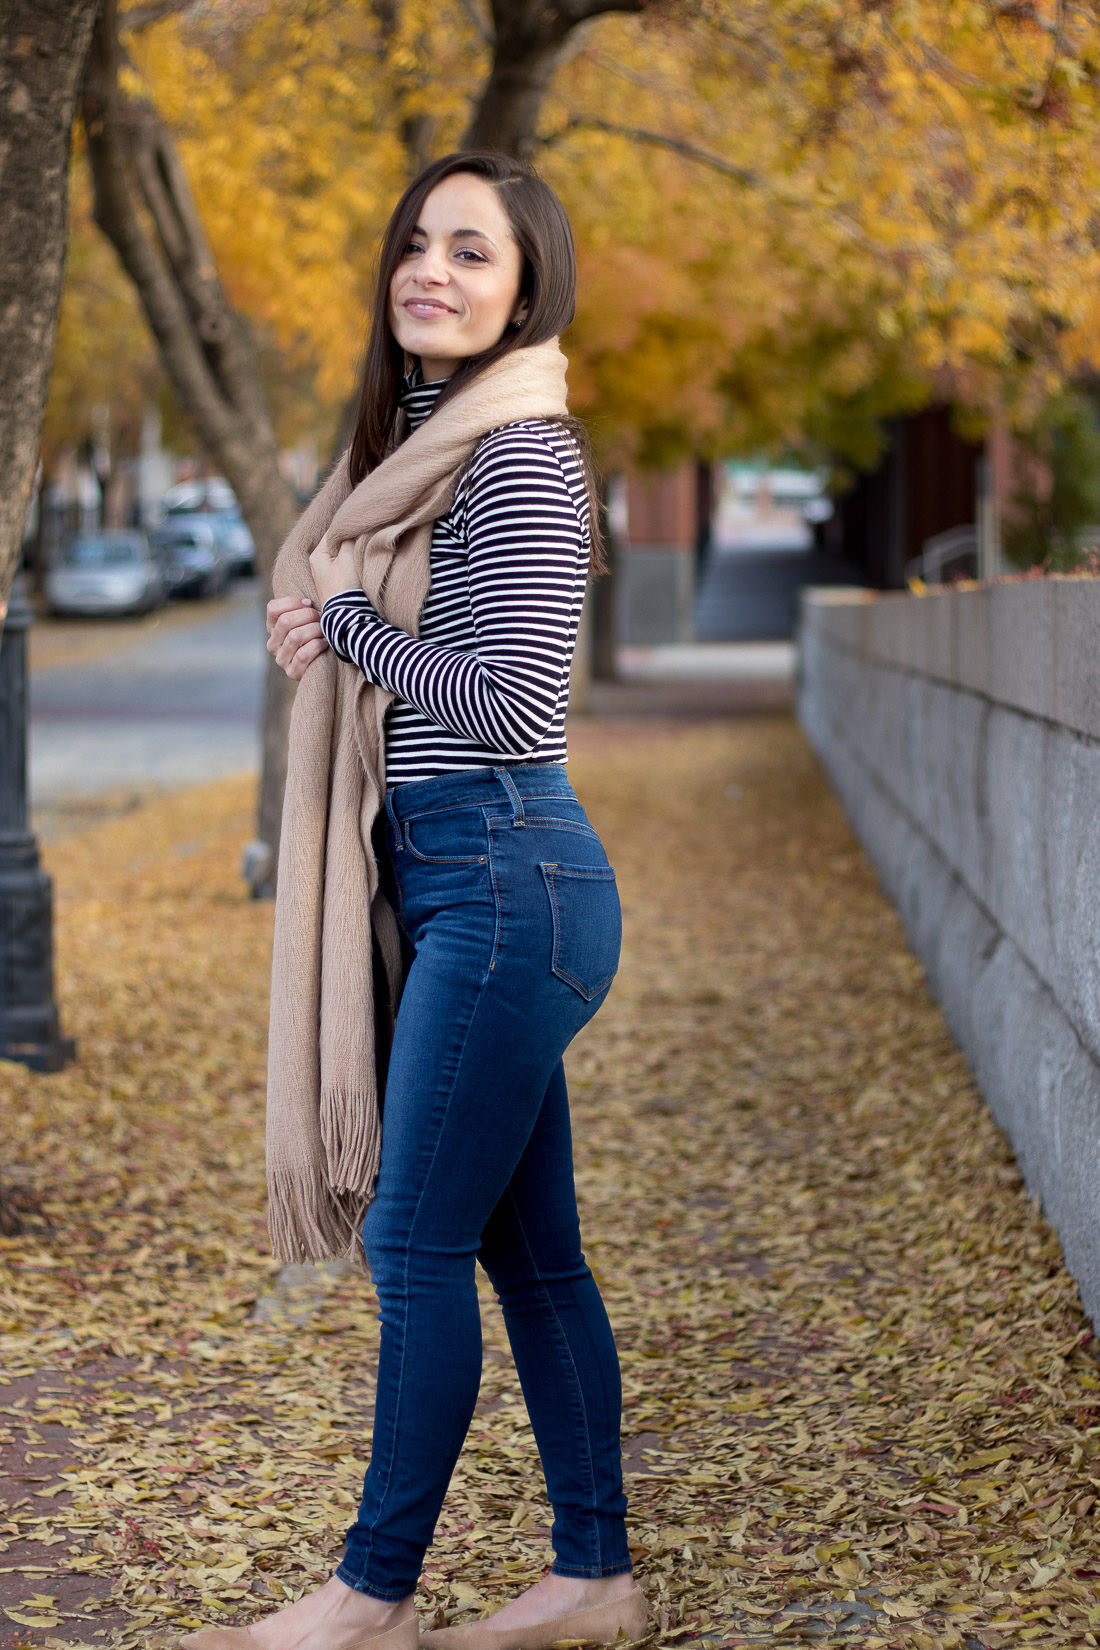 H&M Scarf - Free People Scarf look for less